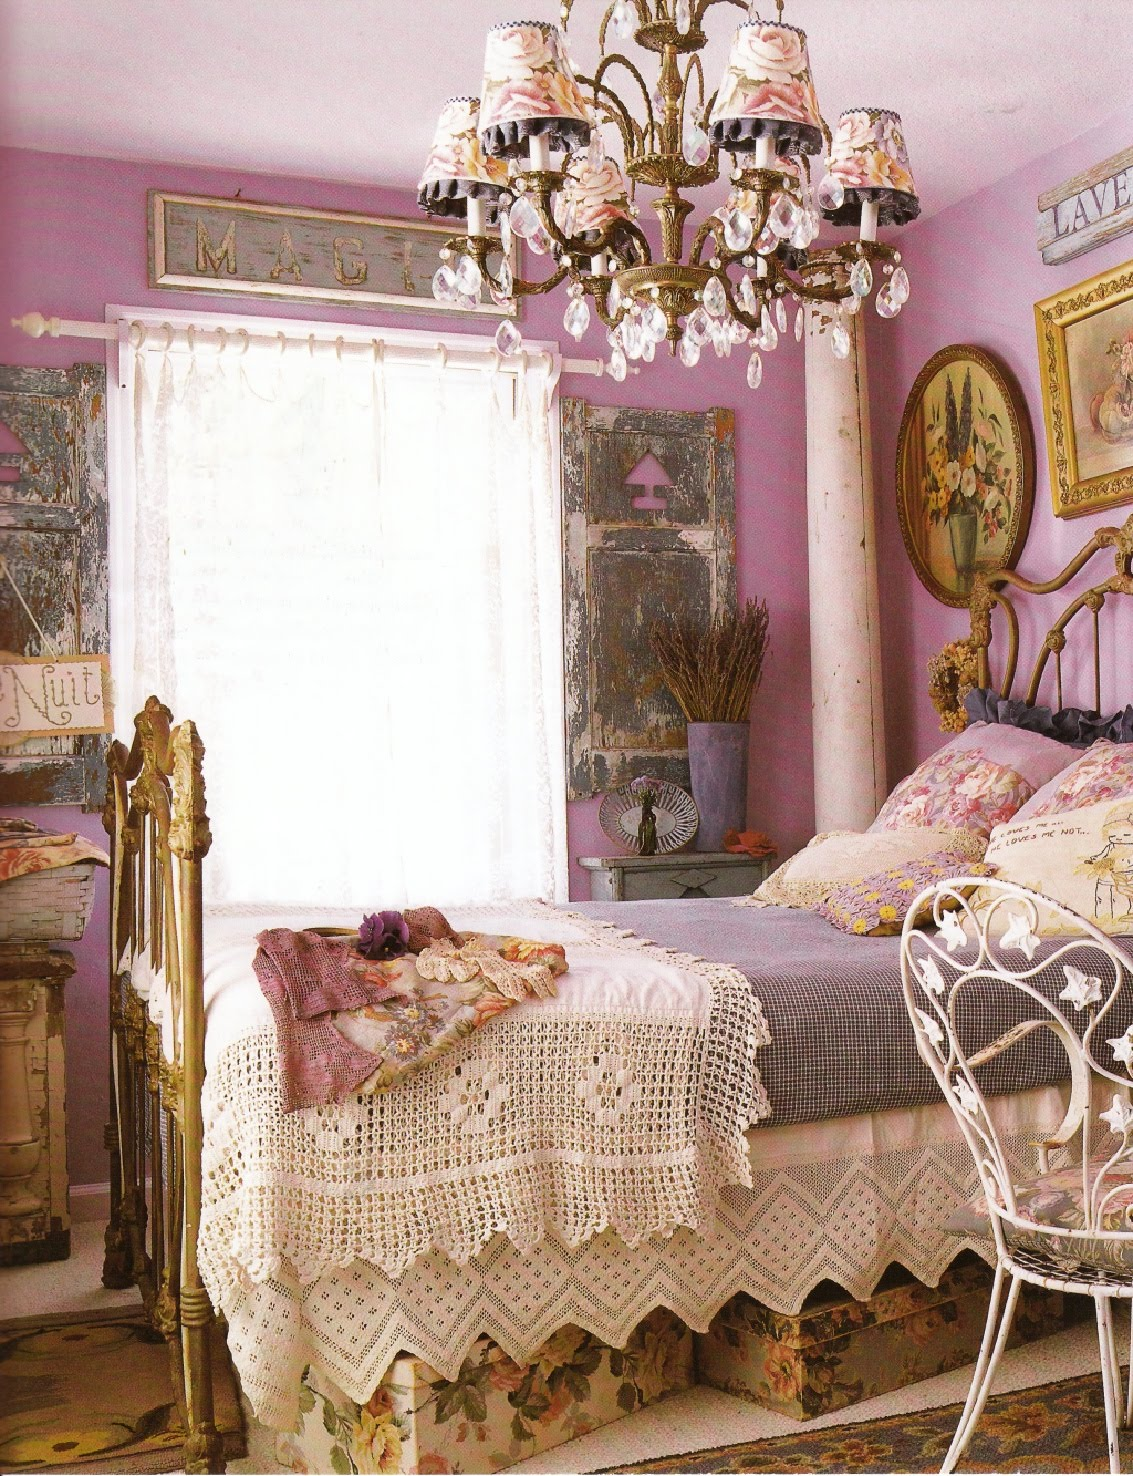 Via Rock Candy Blog Vintage Shabby Chic Furniture And